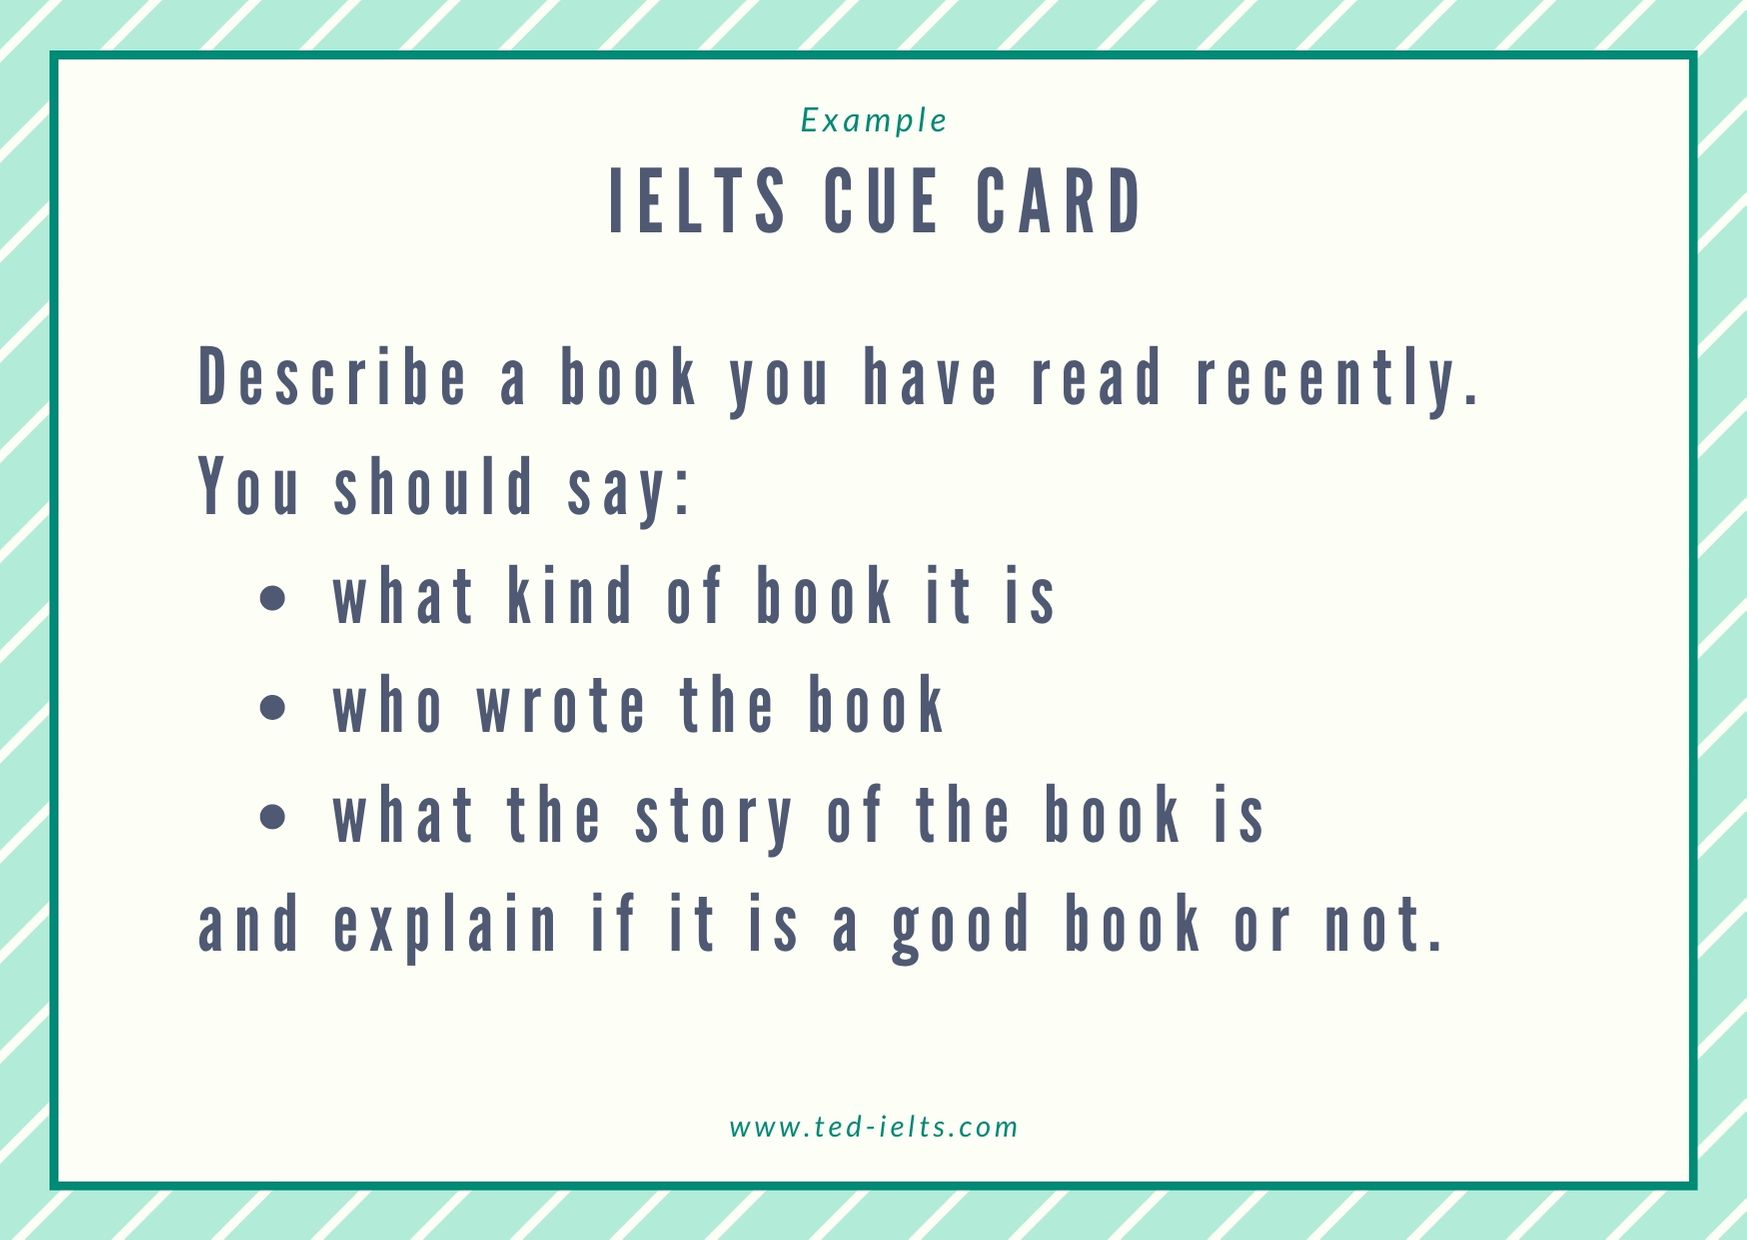 describe a book you have read recently [ielts speaking]